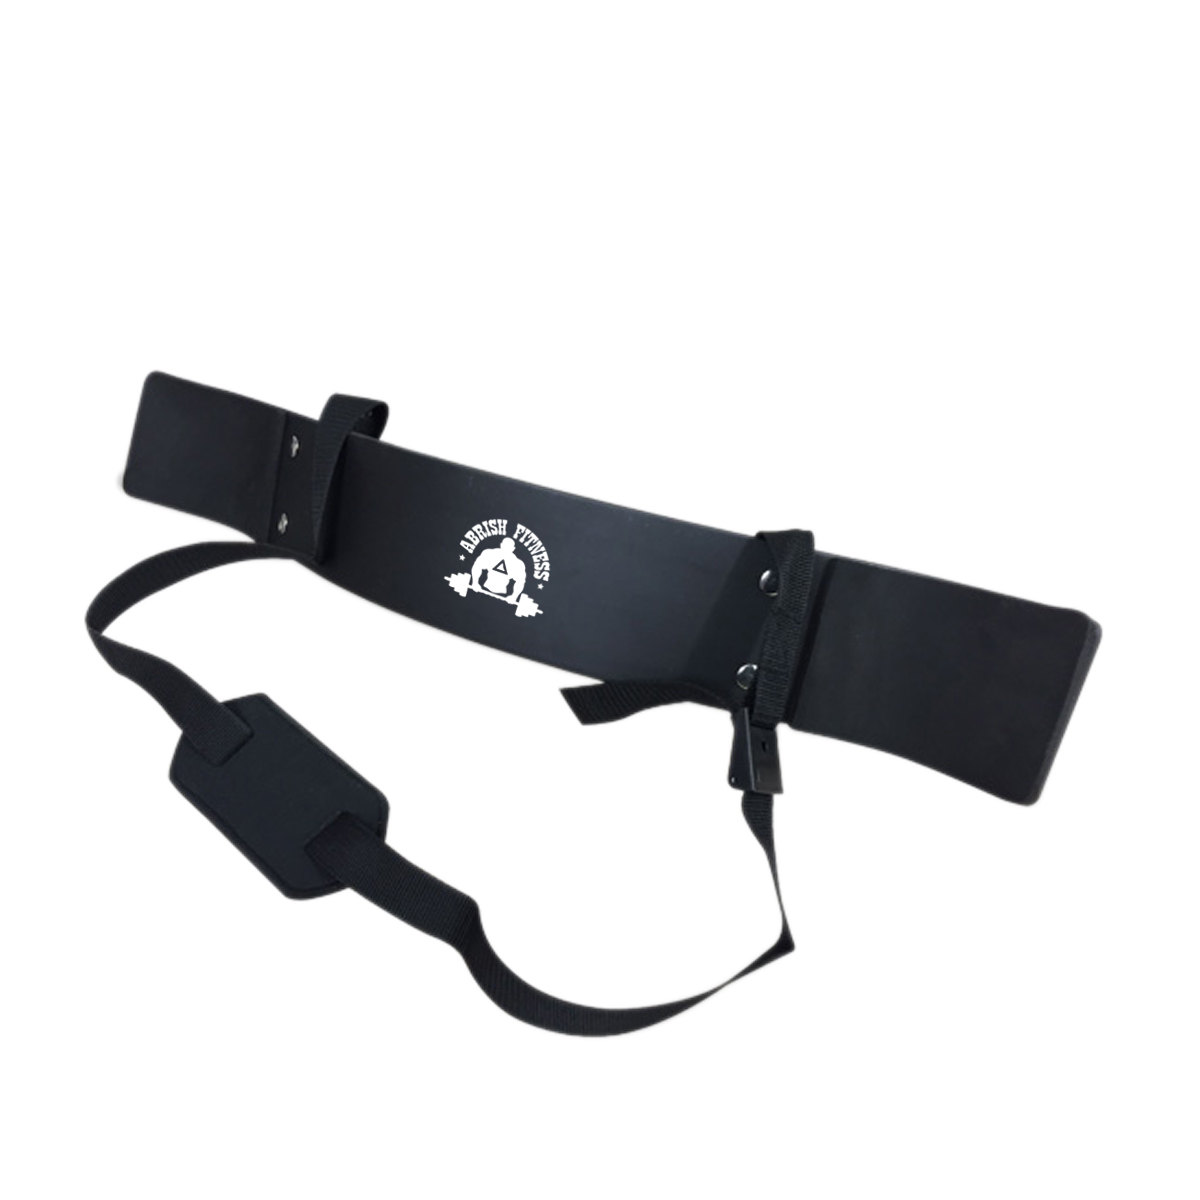 BLACKISH ARM BLASTER WITH RUBBER & WEB